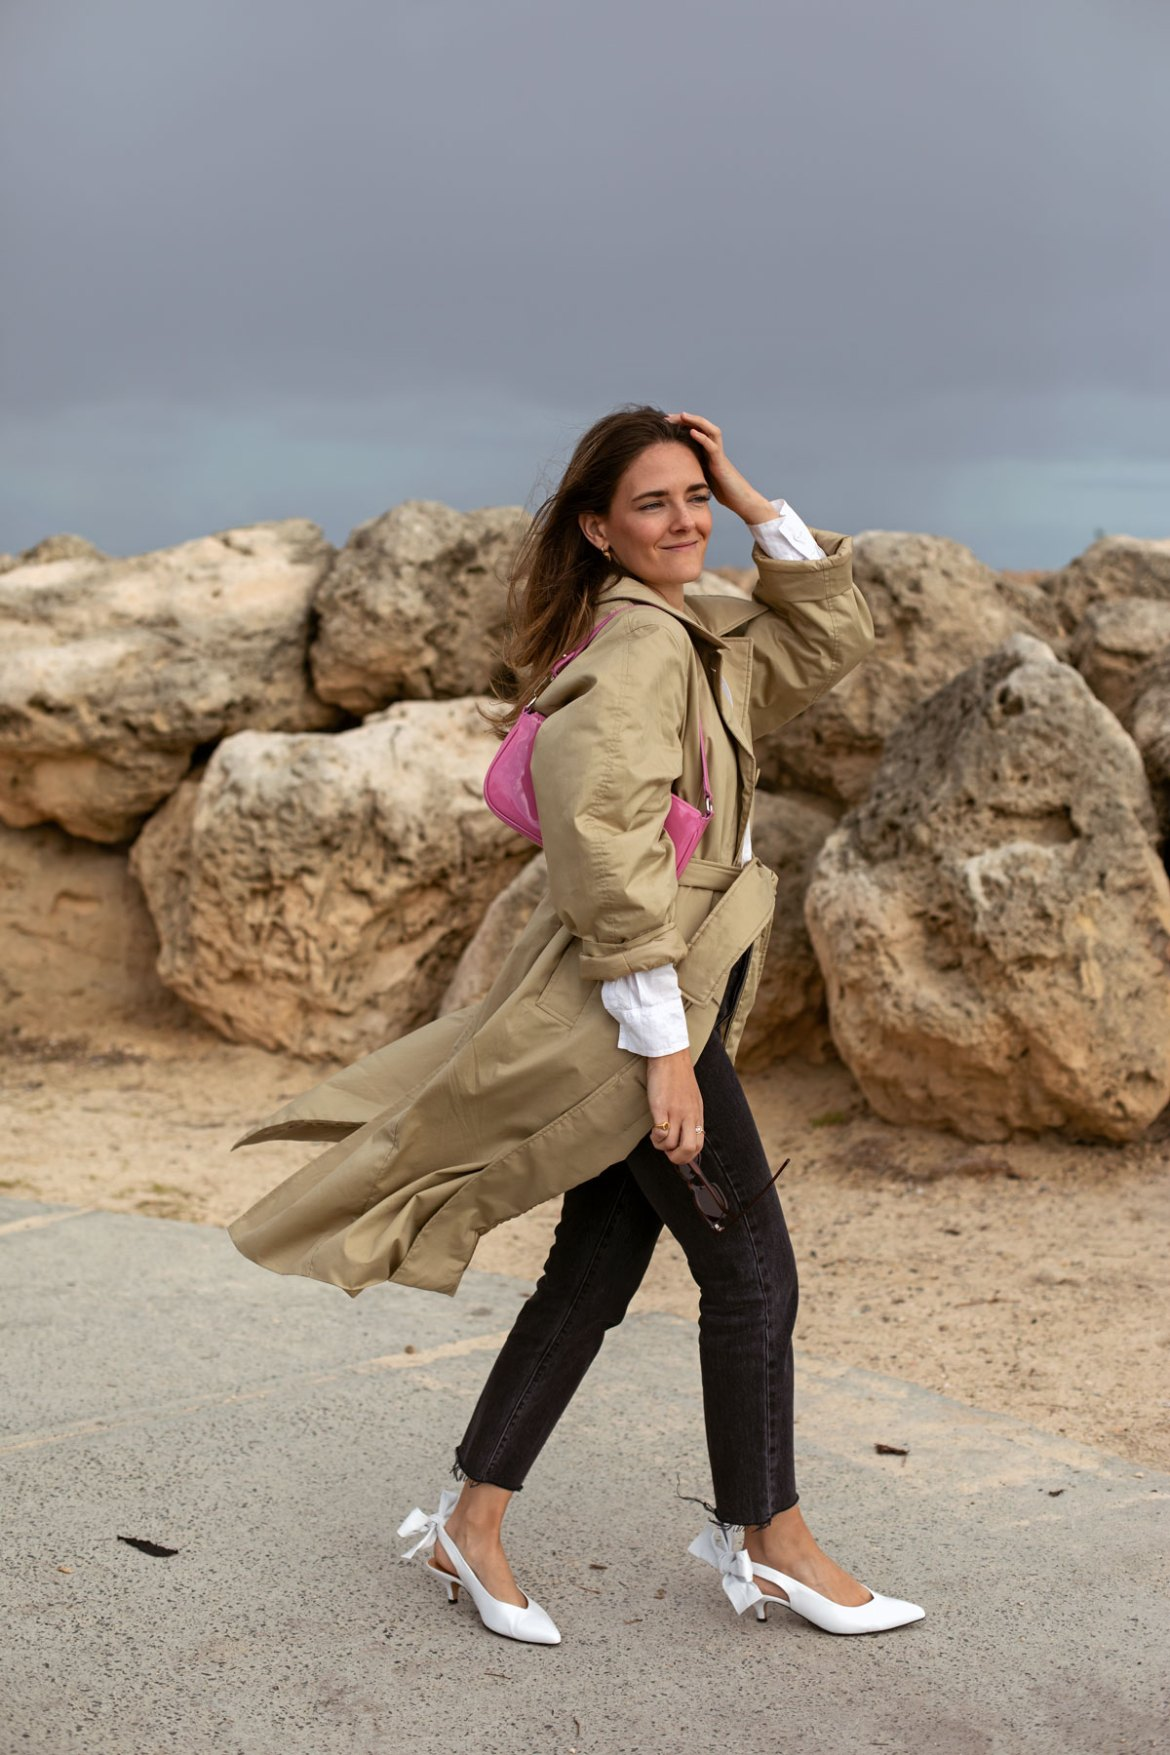 Winter outfit idea with trench coat and pink baguette bag